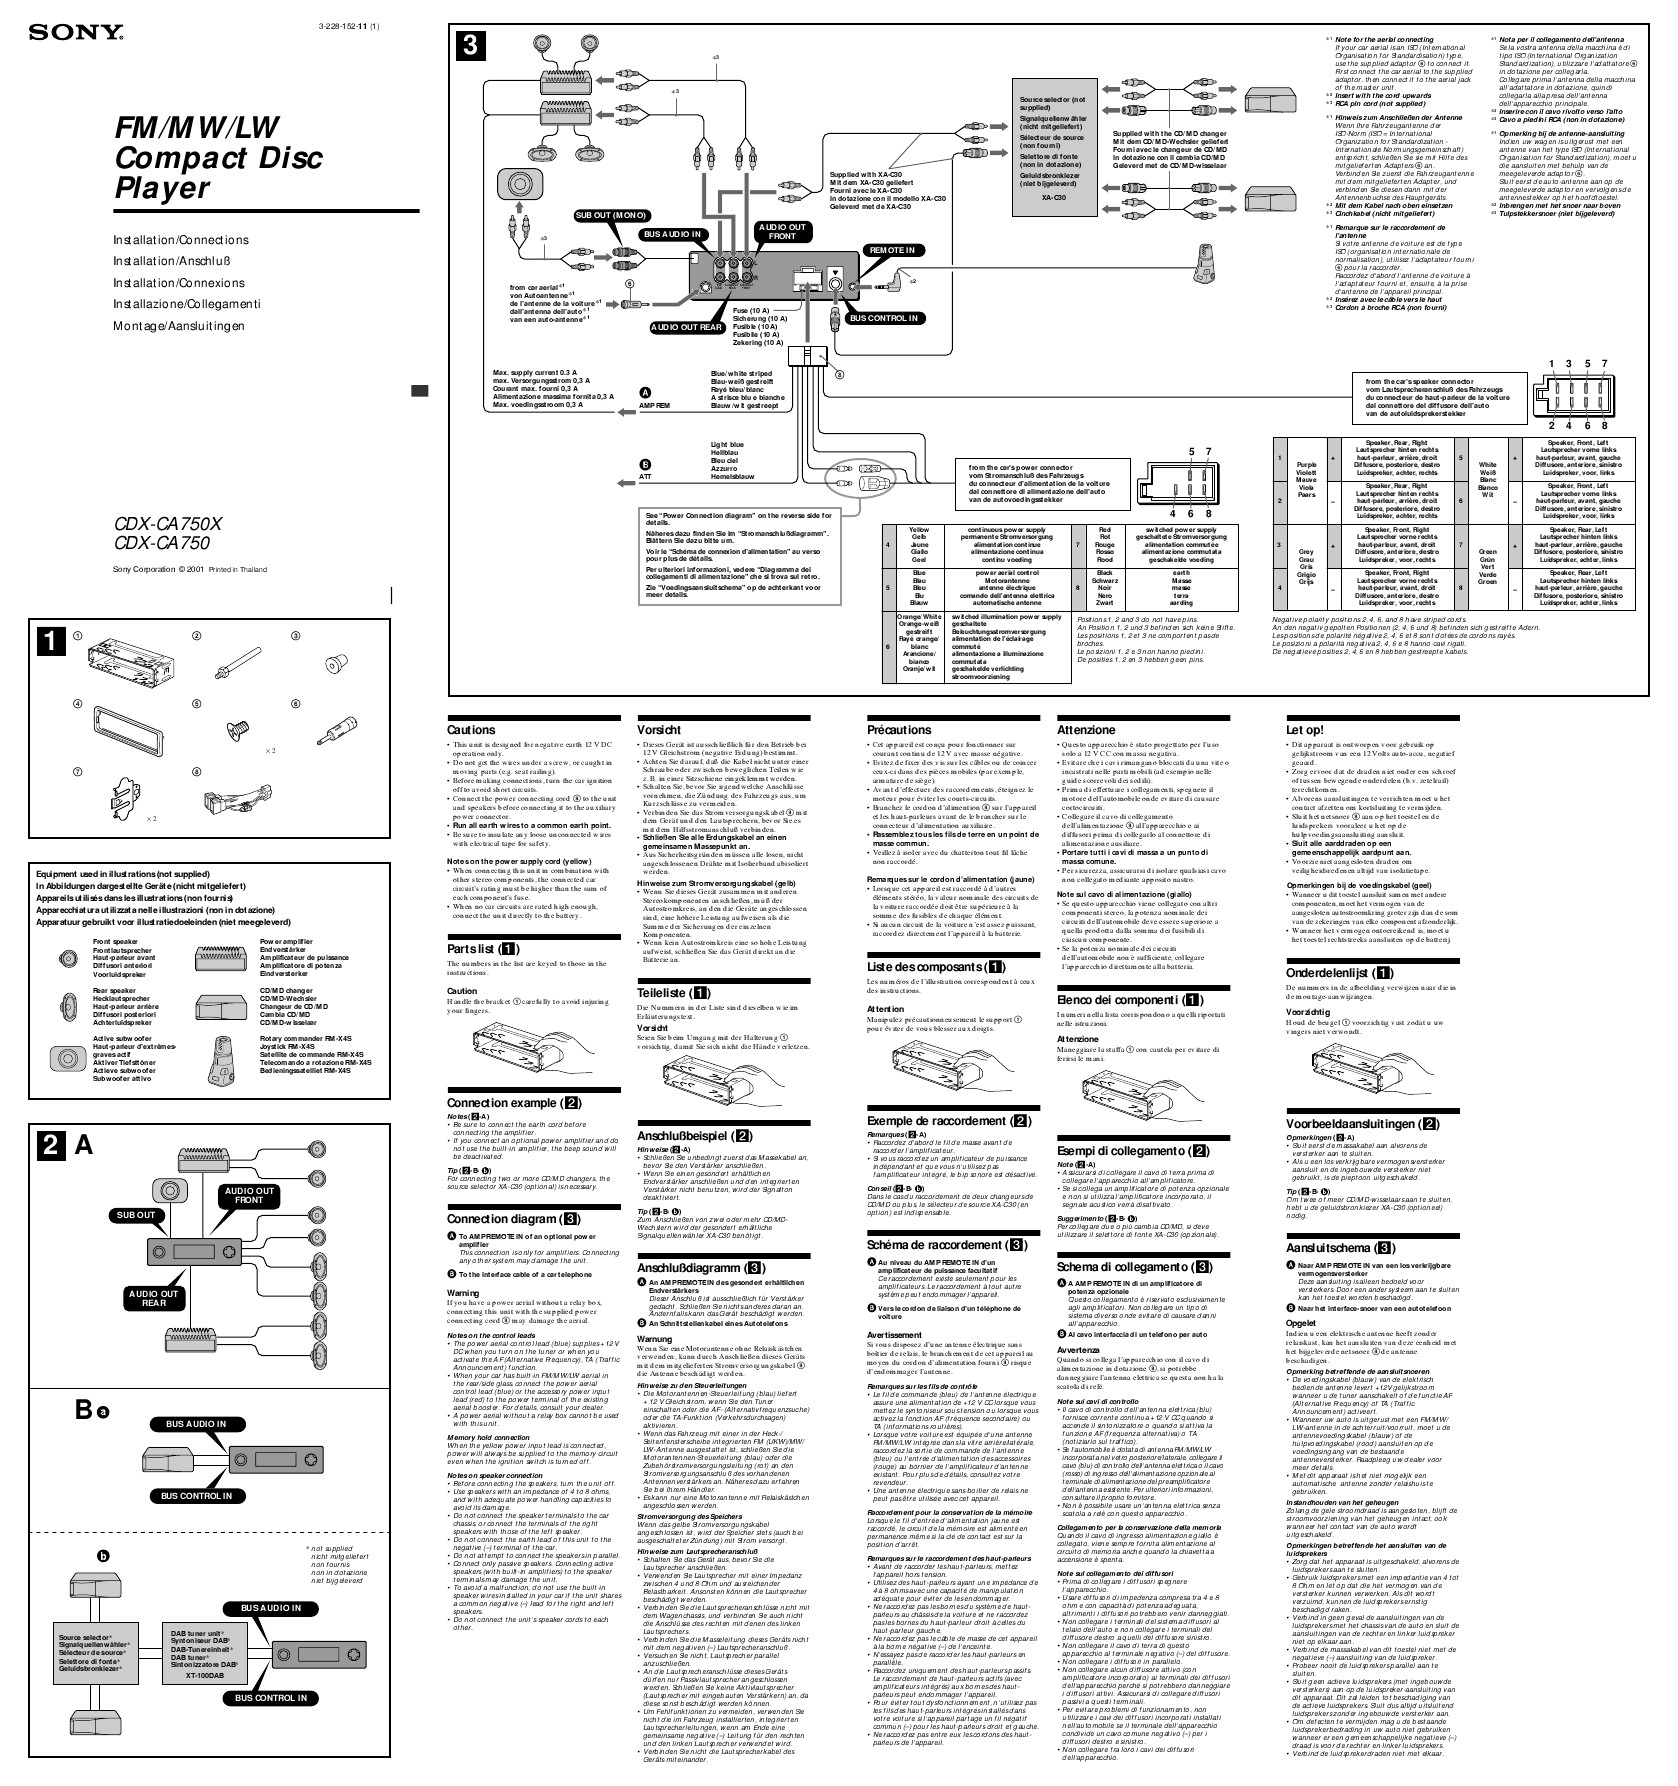 Wiring Diagram for sony Car Stereo Awesome sony Xplod 52wx4 Wiring Diagram Ideas Everything You Need Of Wiring Diagram for sony Car Stereo